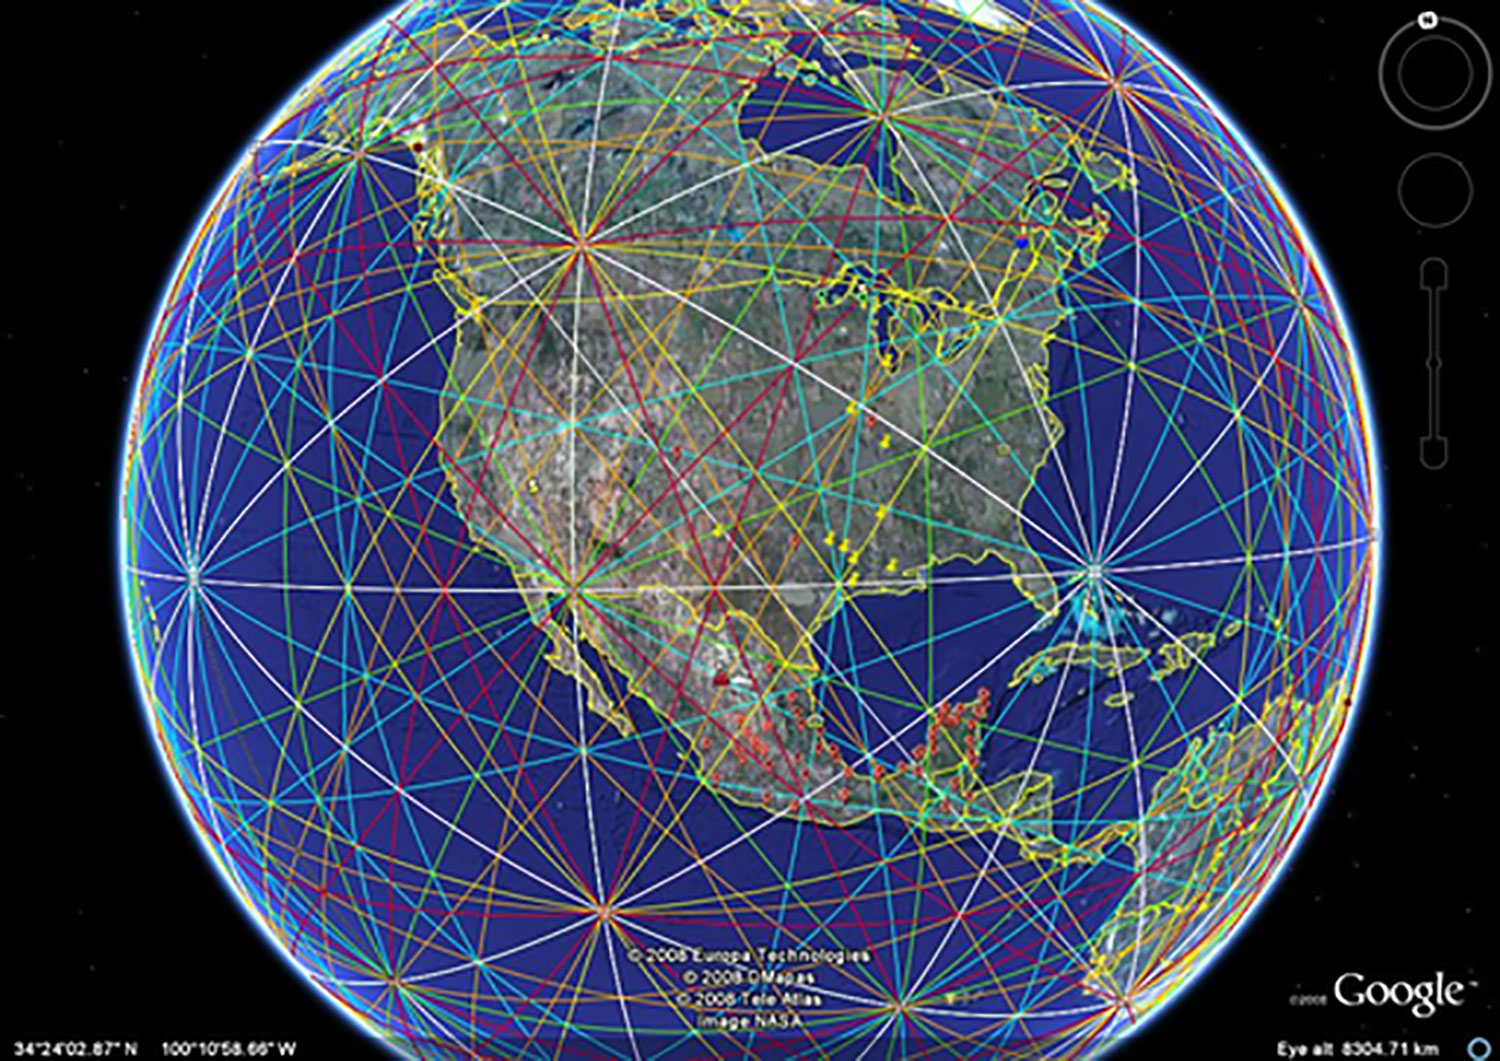 World ley lines (energy lines). From Amino Apps.